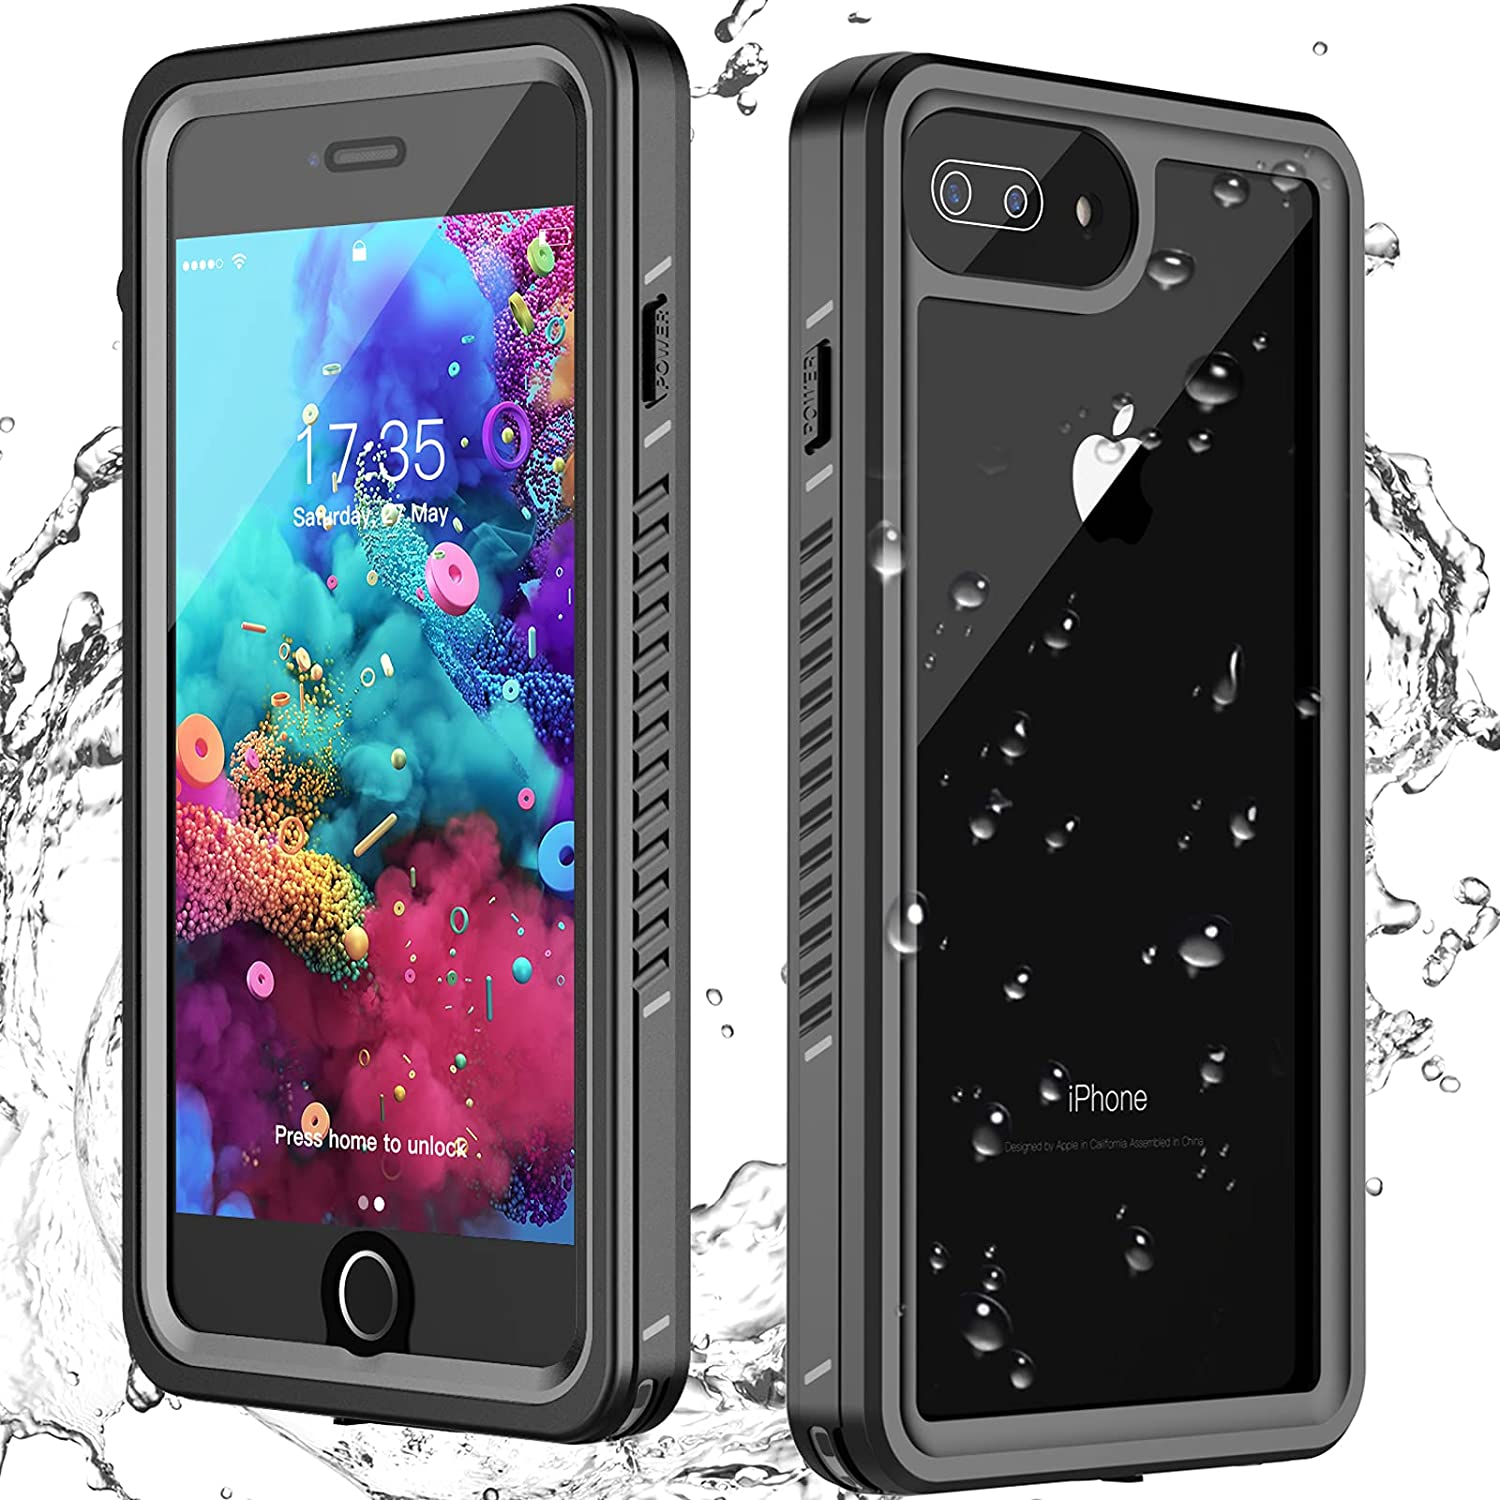 ANTSHARE for iPhone 7 Plus Waterproof Case, iPhone 8 Plus Waterproof case iPhone 7/8 Plus case with Built-in Screen Protector Full Body Cover Shockproof Case for iPhone 7 Plus/8 Plus(5.5')